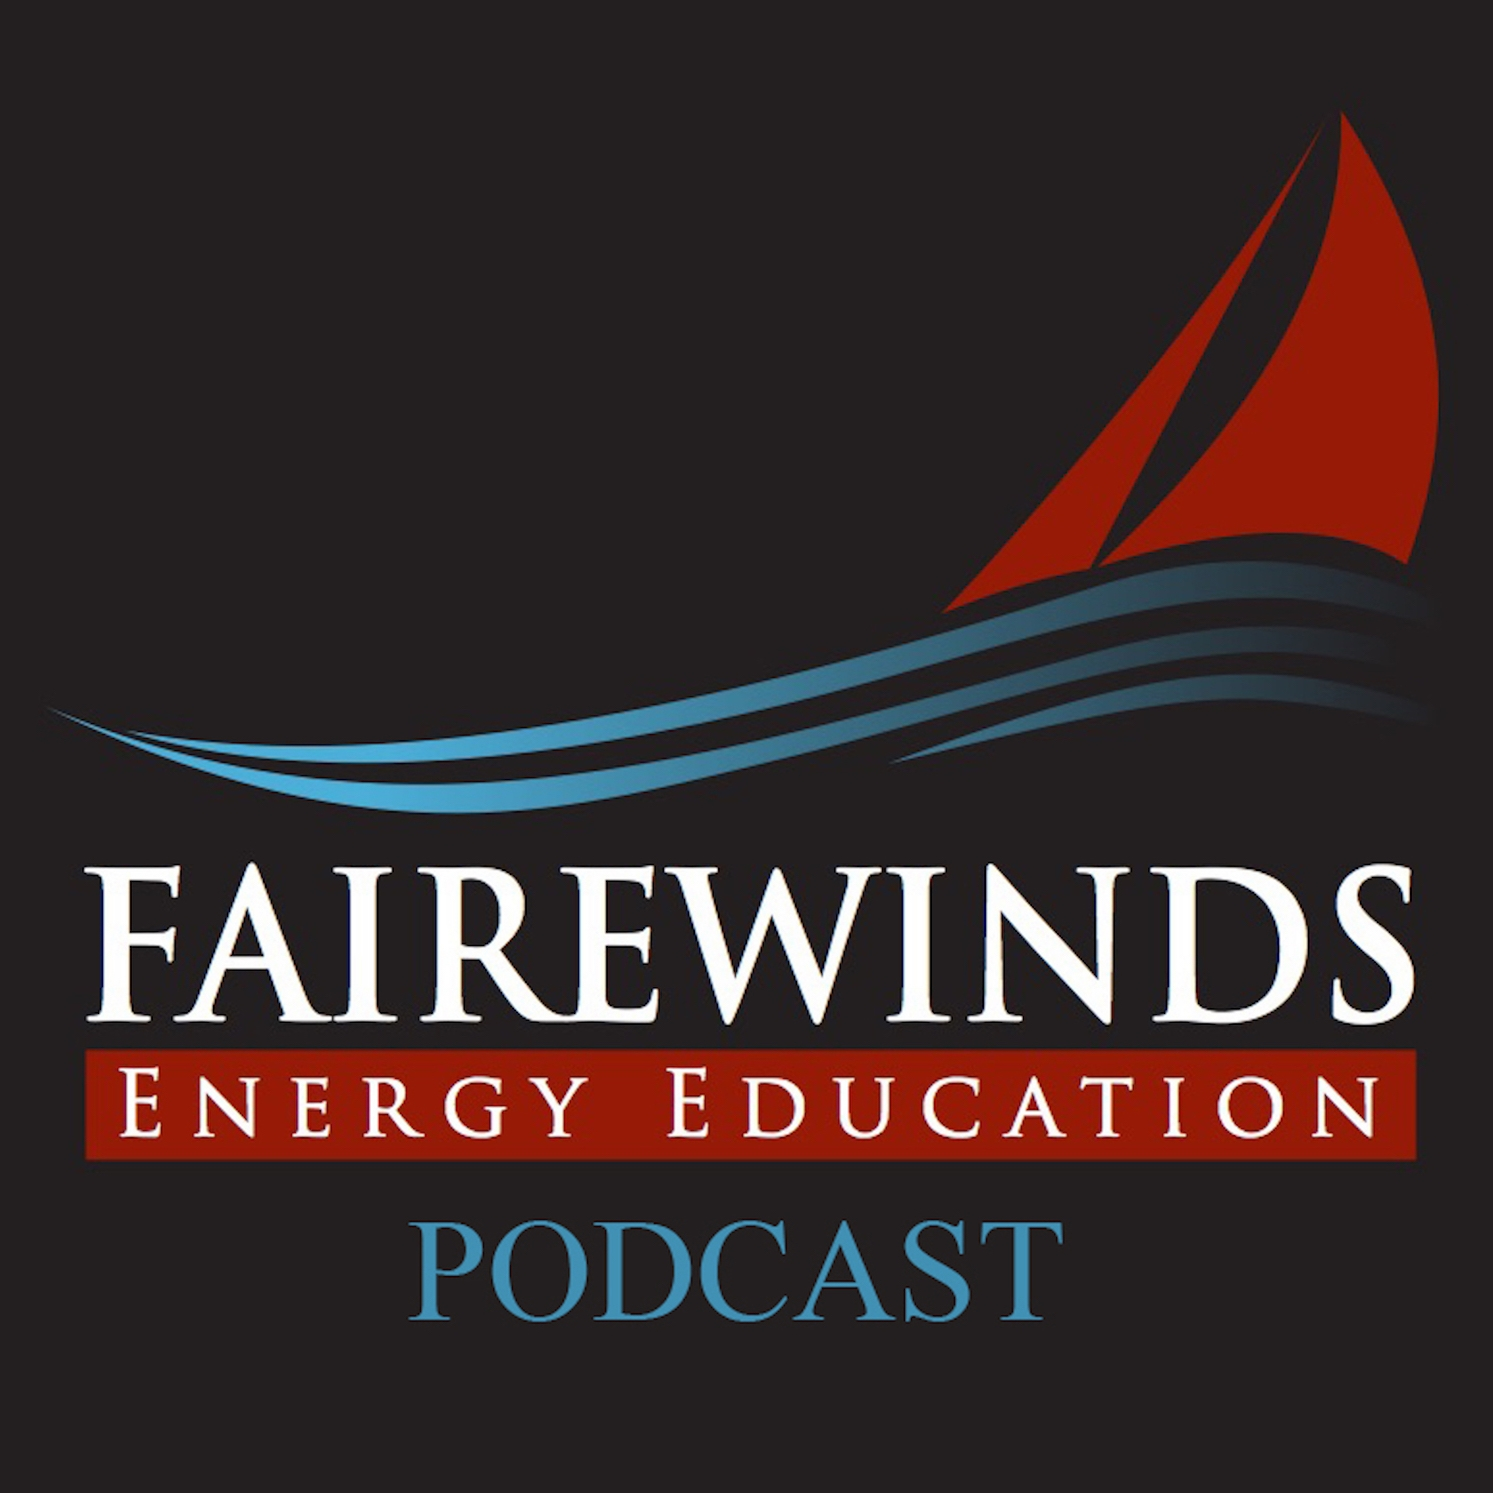 Fairewinds Energy Education Podcast